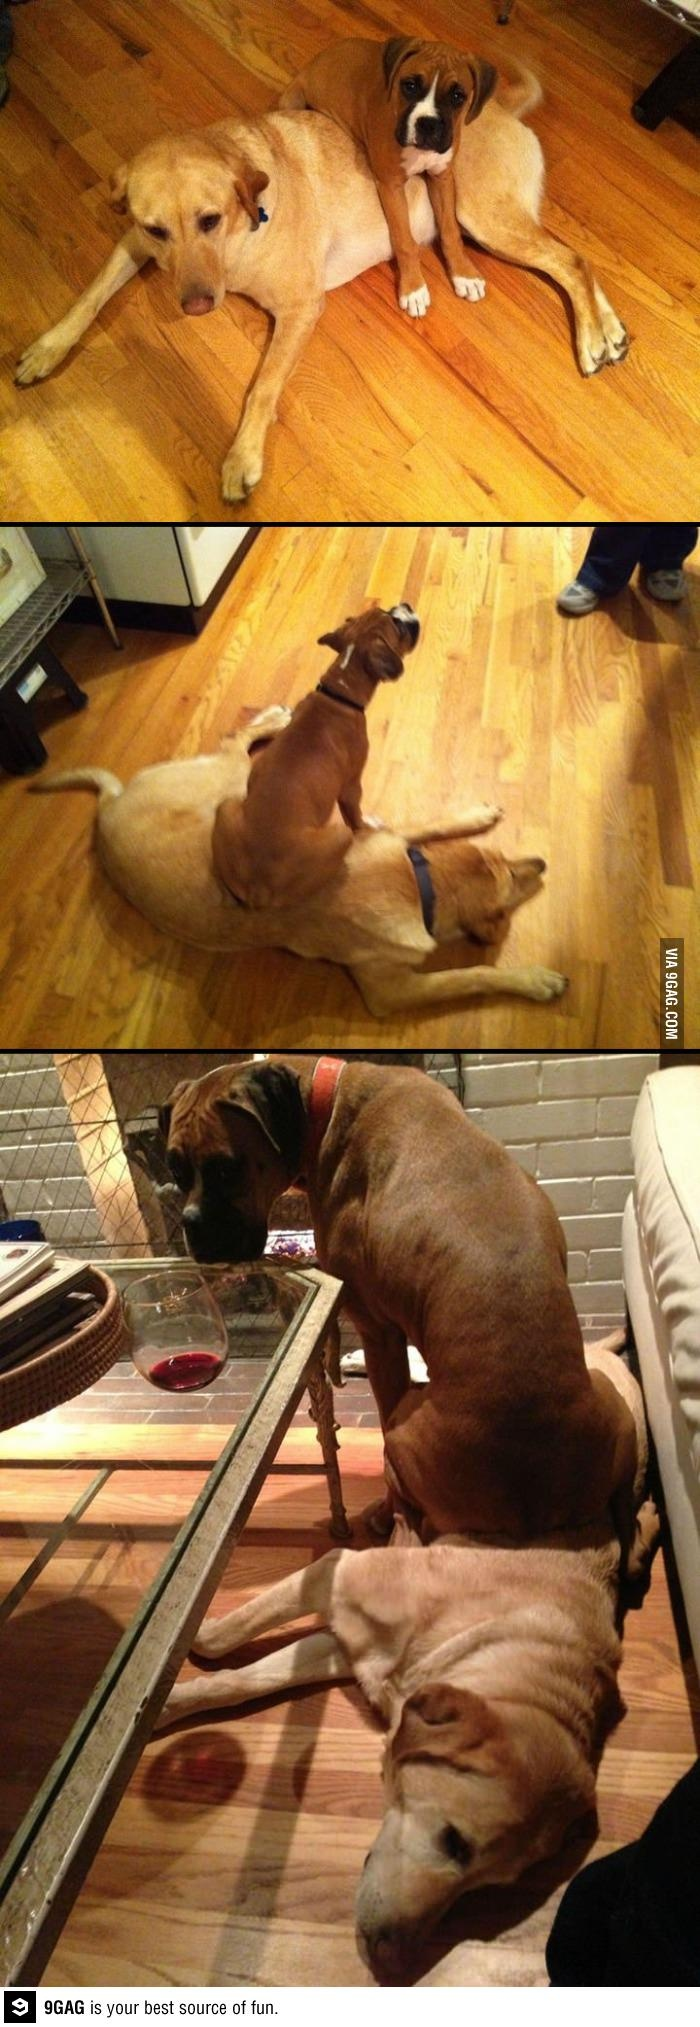 Some things never change (boxer) Mine does this to whom ever sits on the floor.: Fishaayy Animals, Funny Animals, Boxer Rotts Dogs, Boxer Dogs, Change Boxers, Animal Stuff, Silly Boxers, Things, Dog Stuff